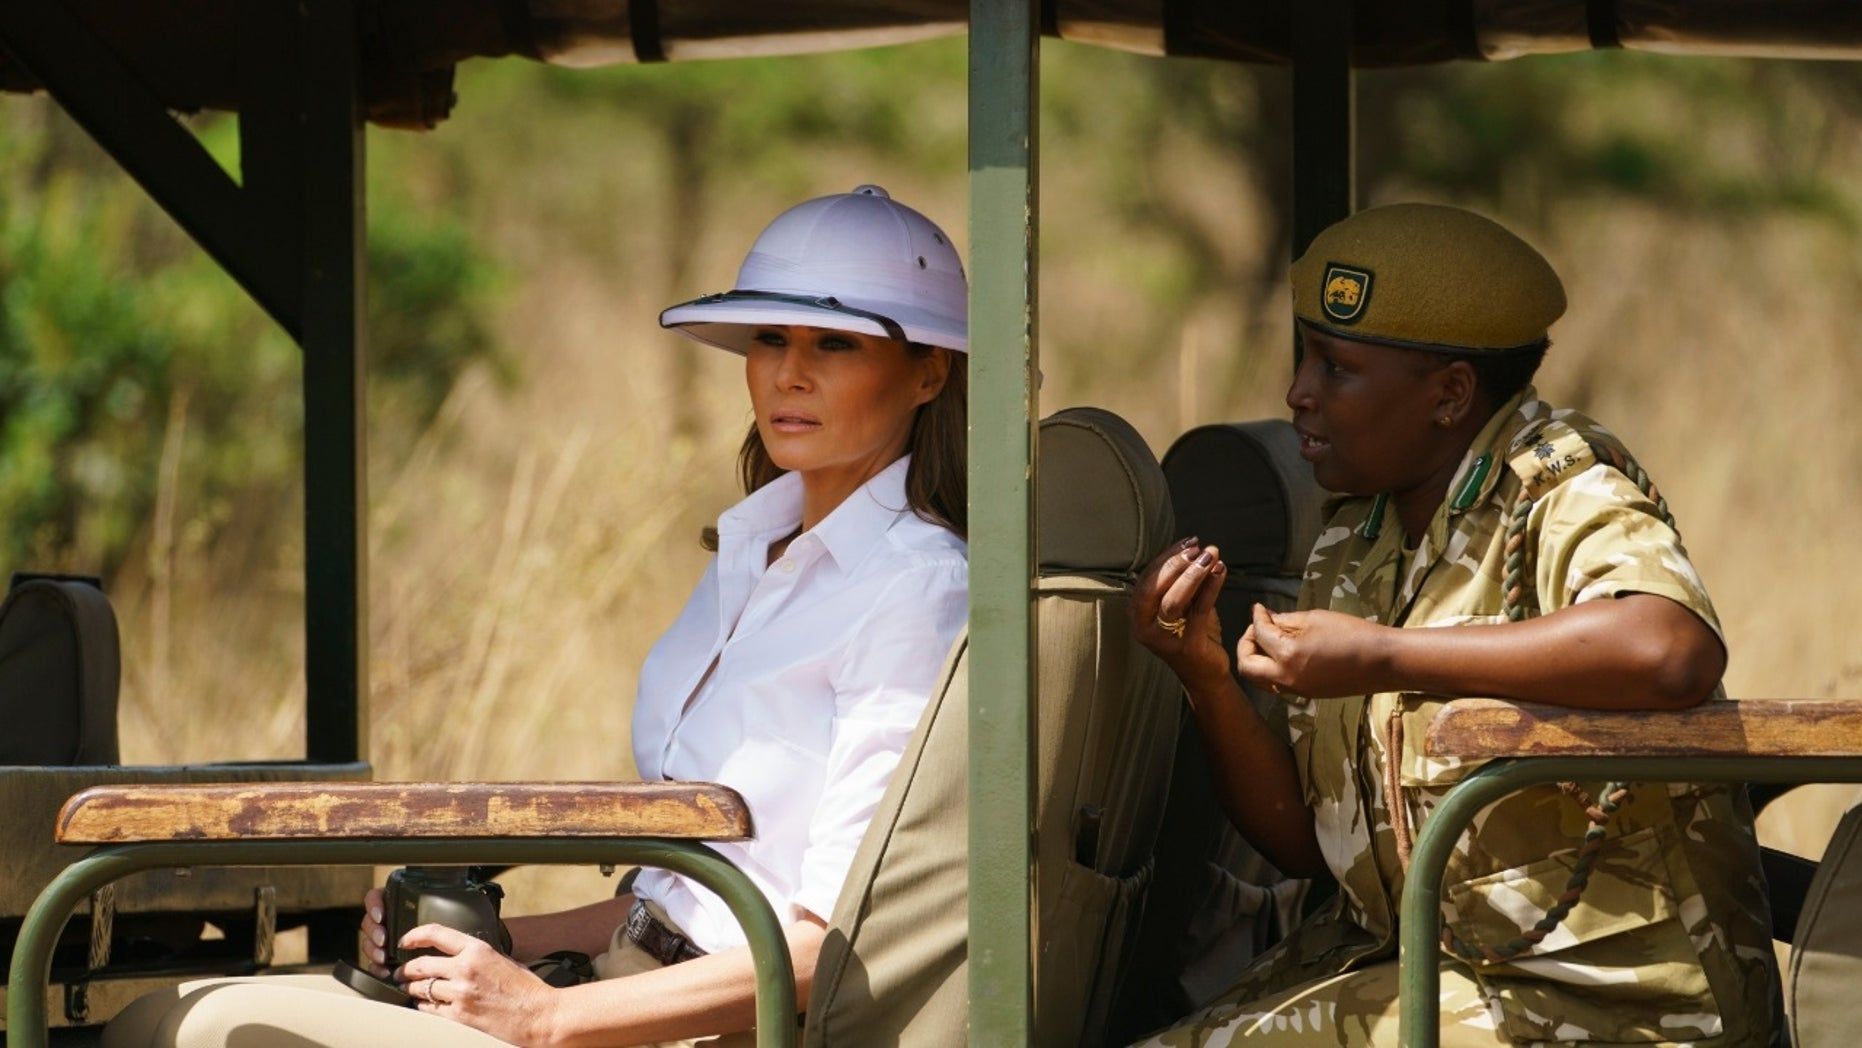 Melania Trump was criticized after she was spotted wearing a white pith helmet during her trip to Africa.